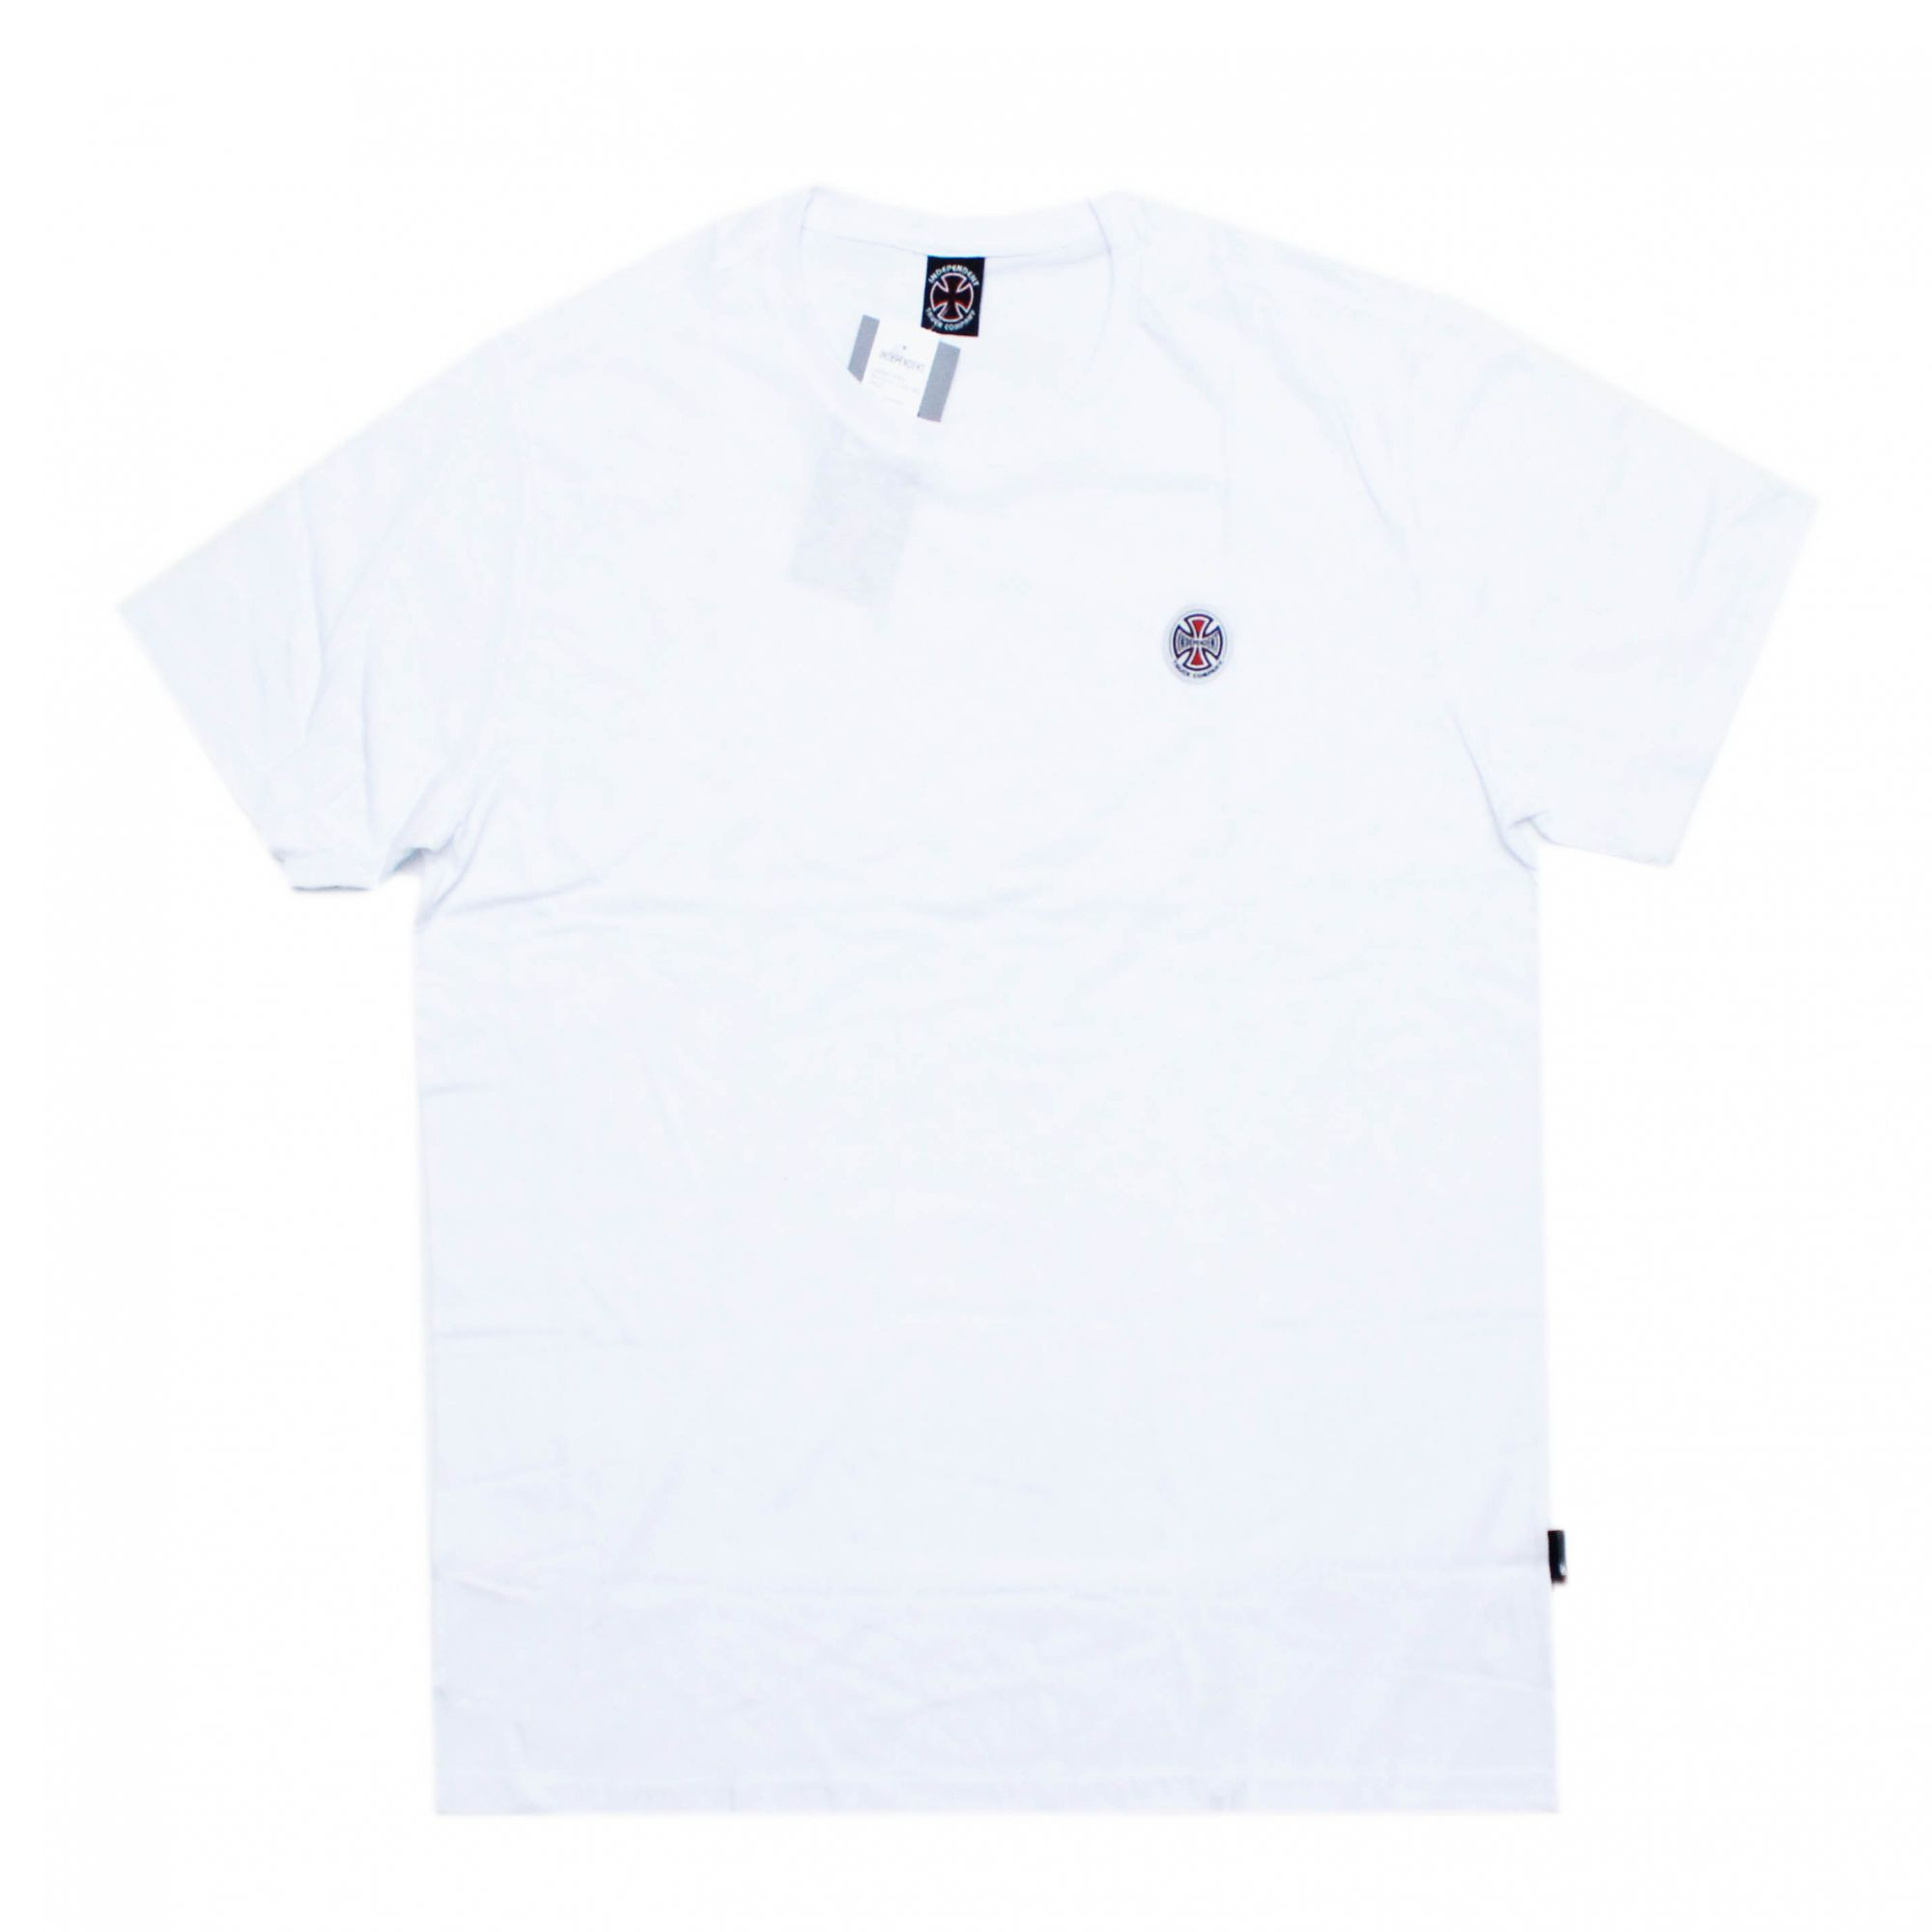 Camiseta Independent Buttom Truck Co 3 Colors Chest Branco